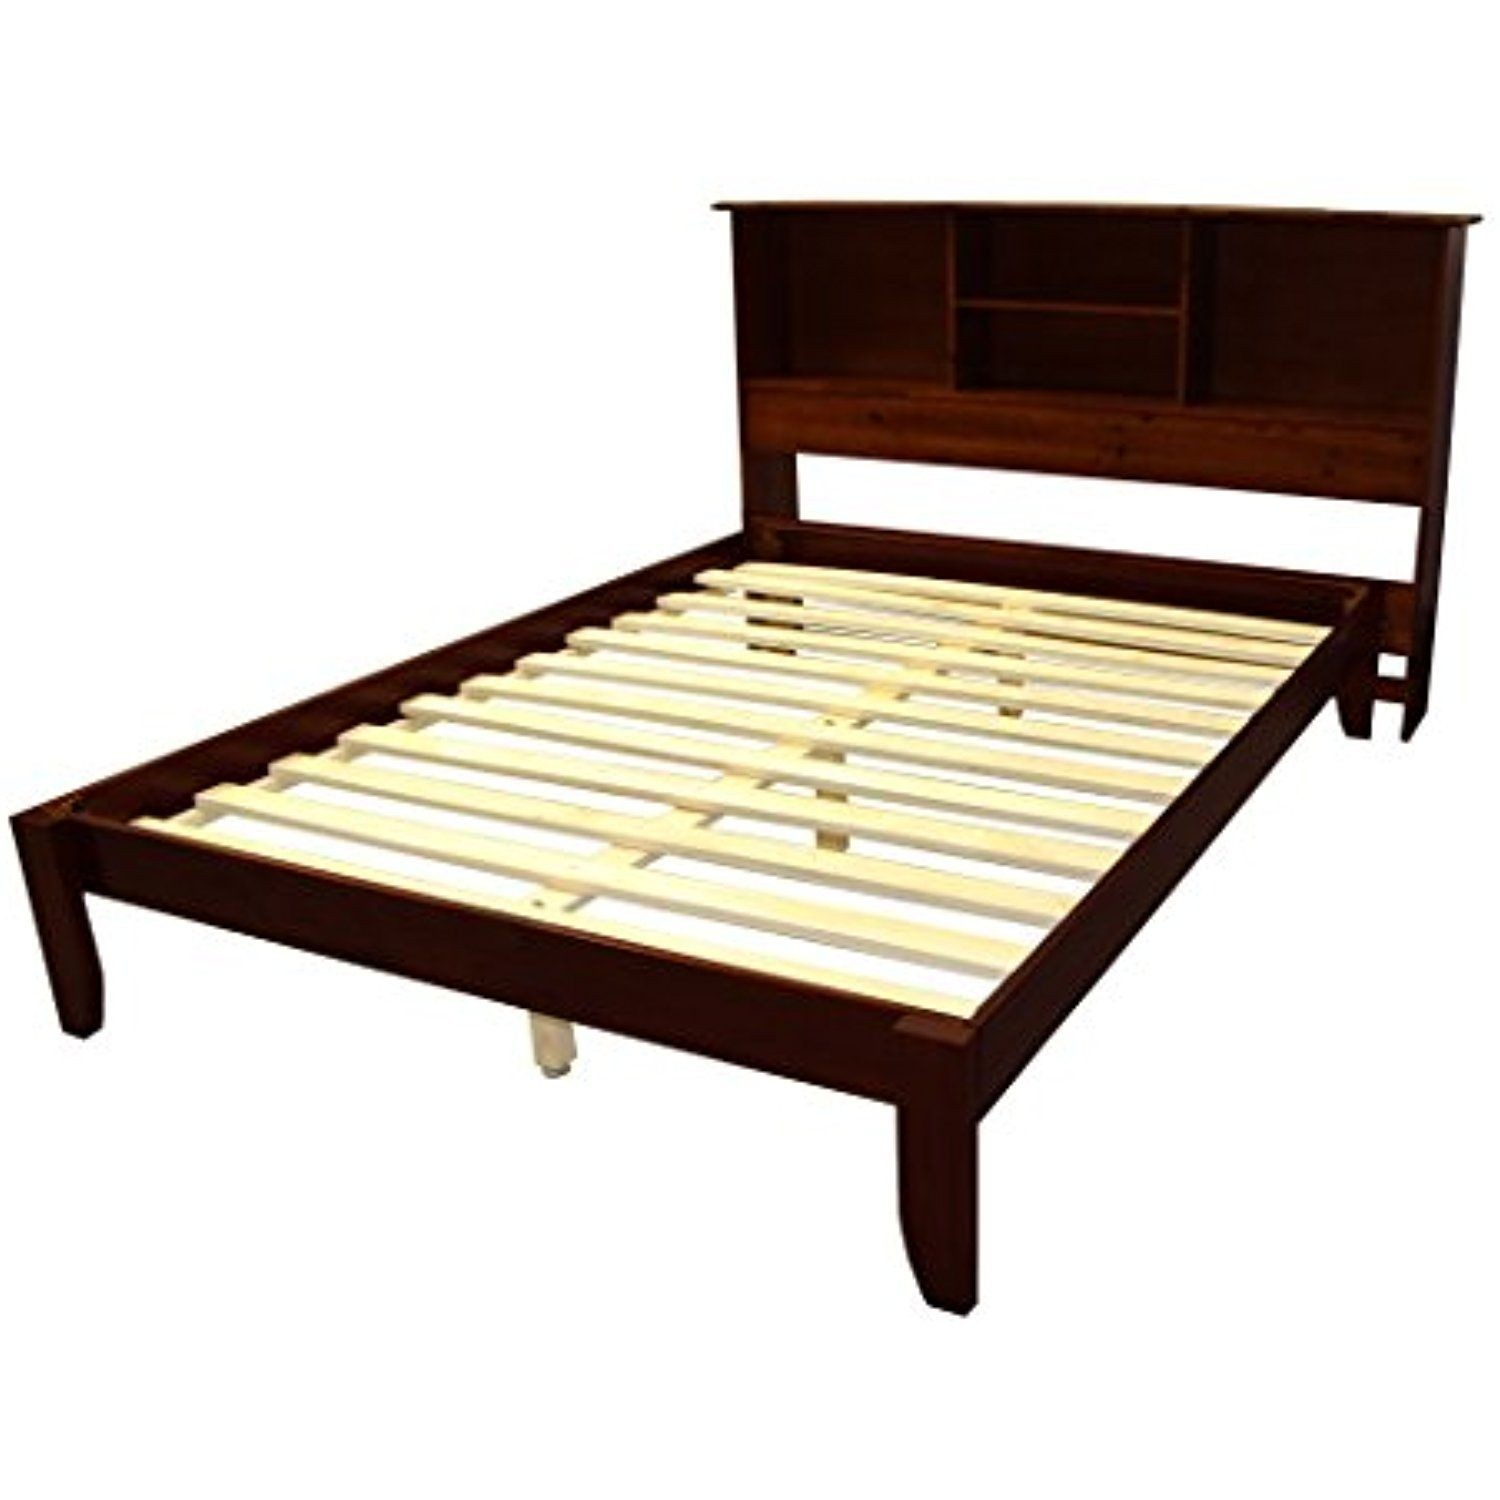 Scandinavia full size solid wood platform bed with bookcase headboard